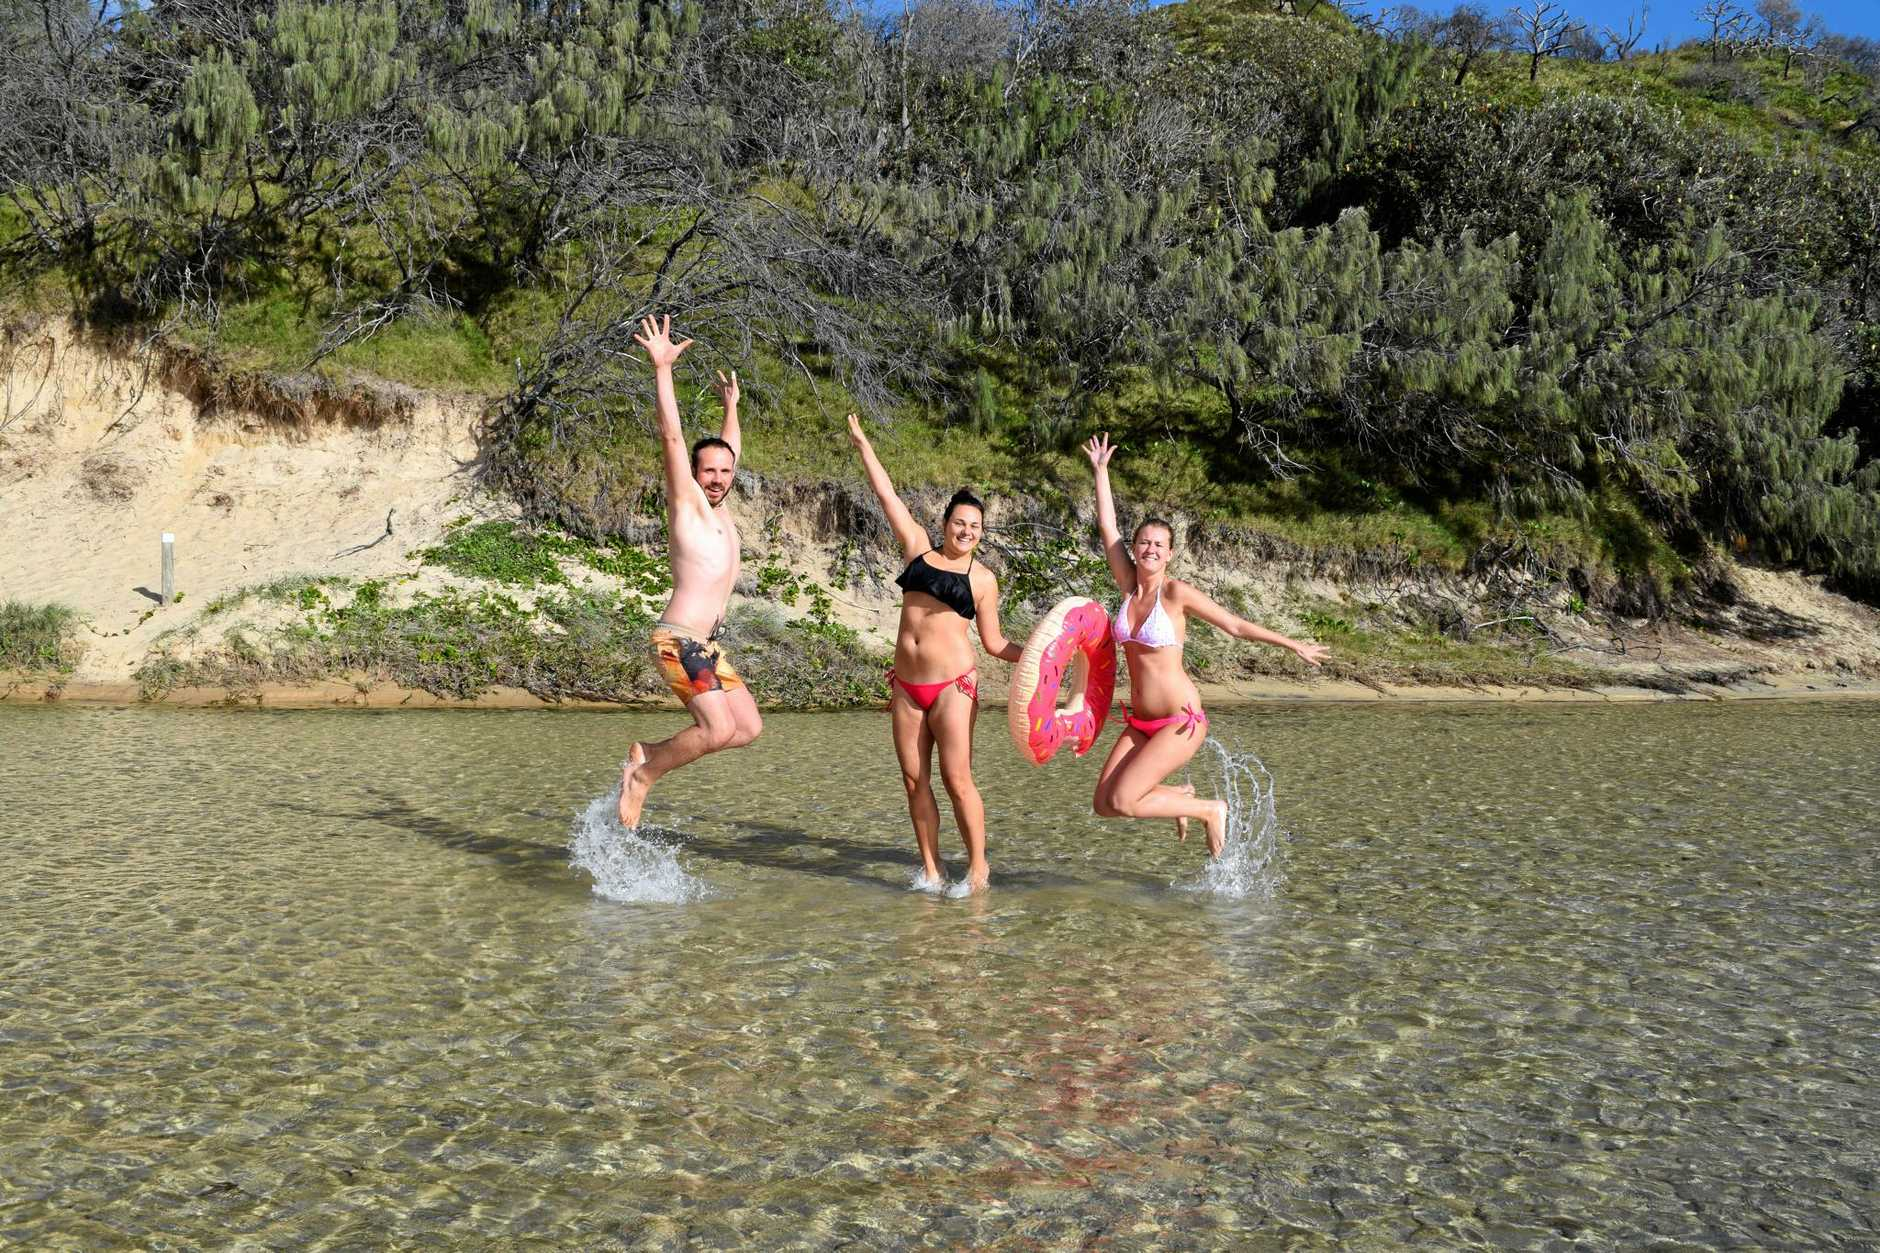 Sven Knoff, Steffi Zettelmayer and Nadine Strzempek say out of everywhere they have been, they love Fraser Island the most. Here they're pictured at Eli Creek.